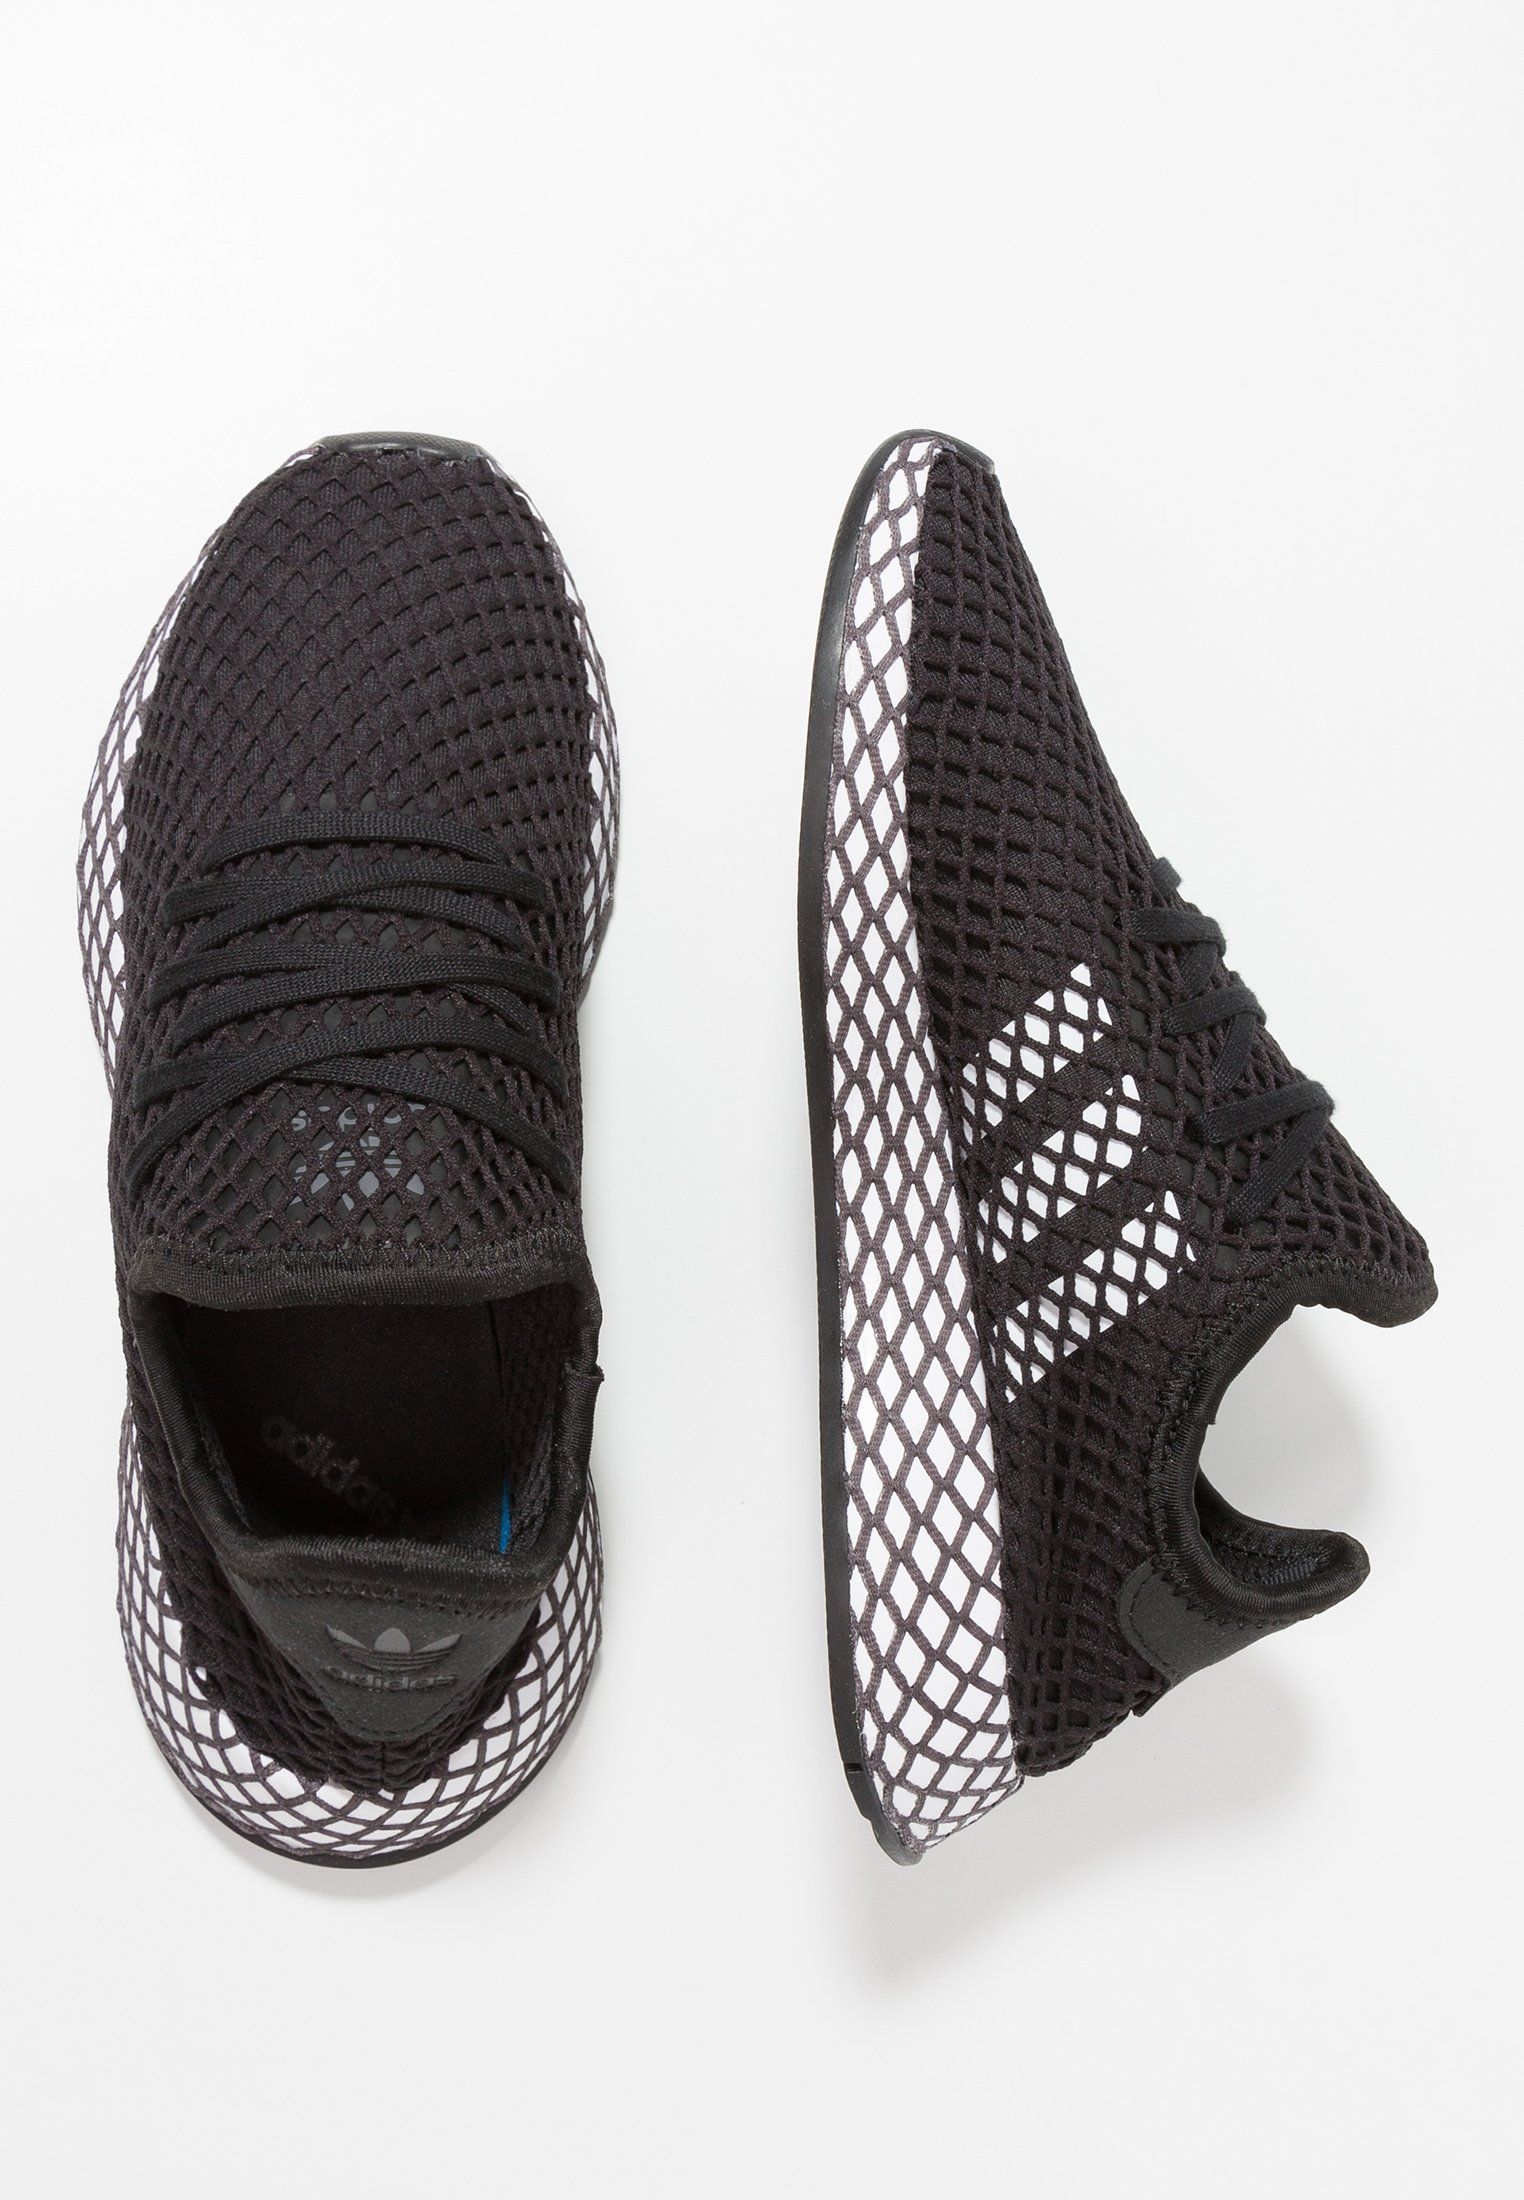 DEERUPT RUNNER Sneakers core blackfootwear whitegrey five